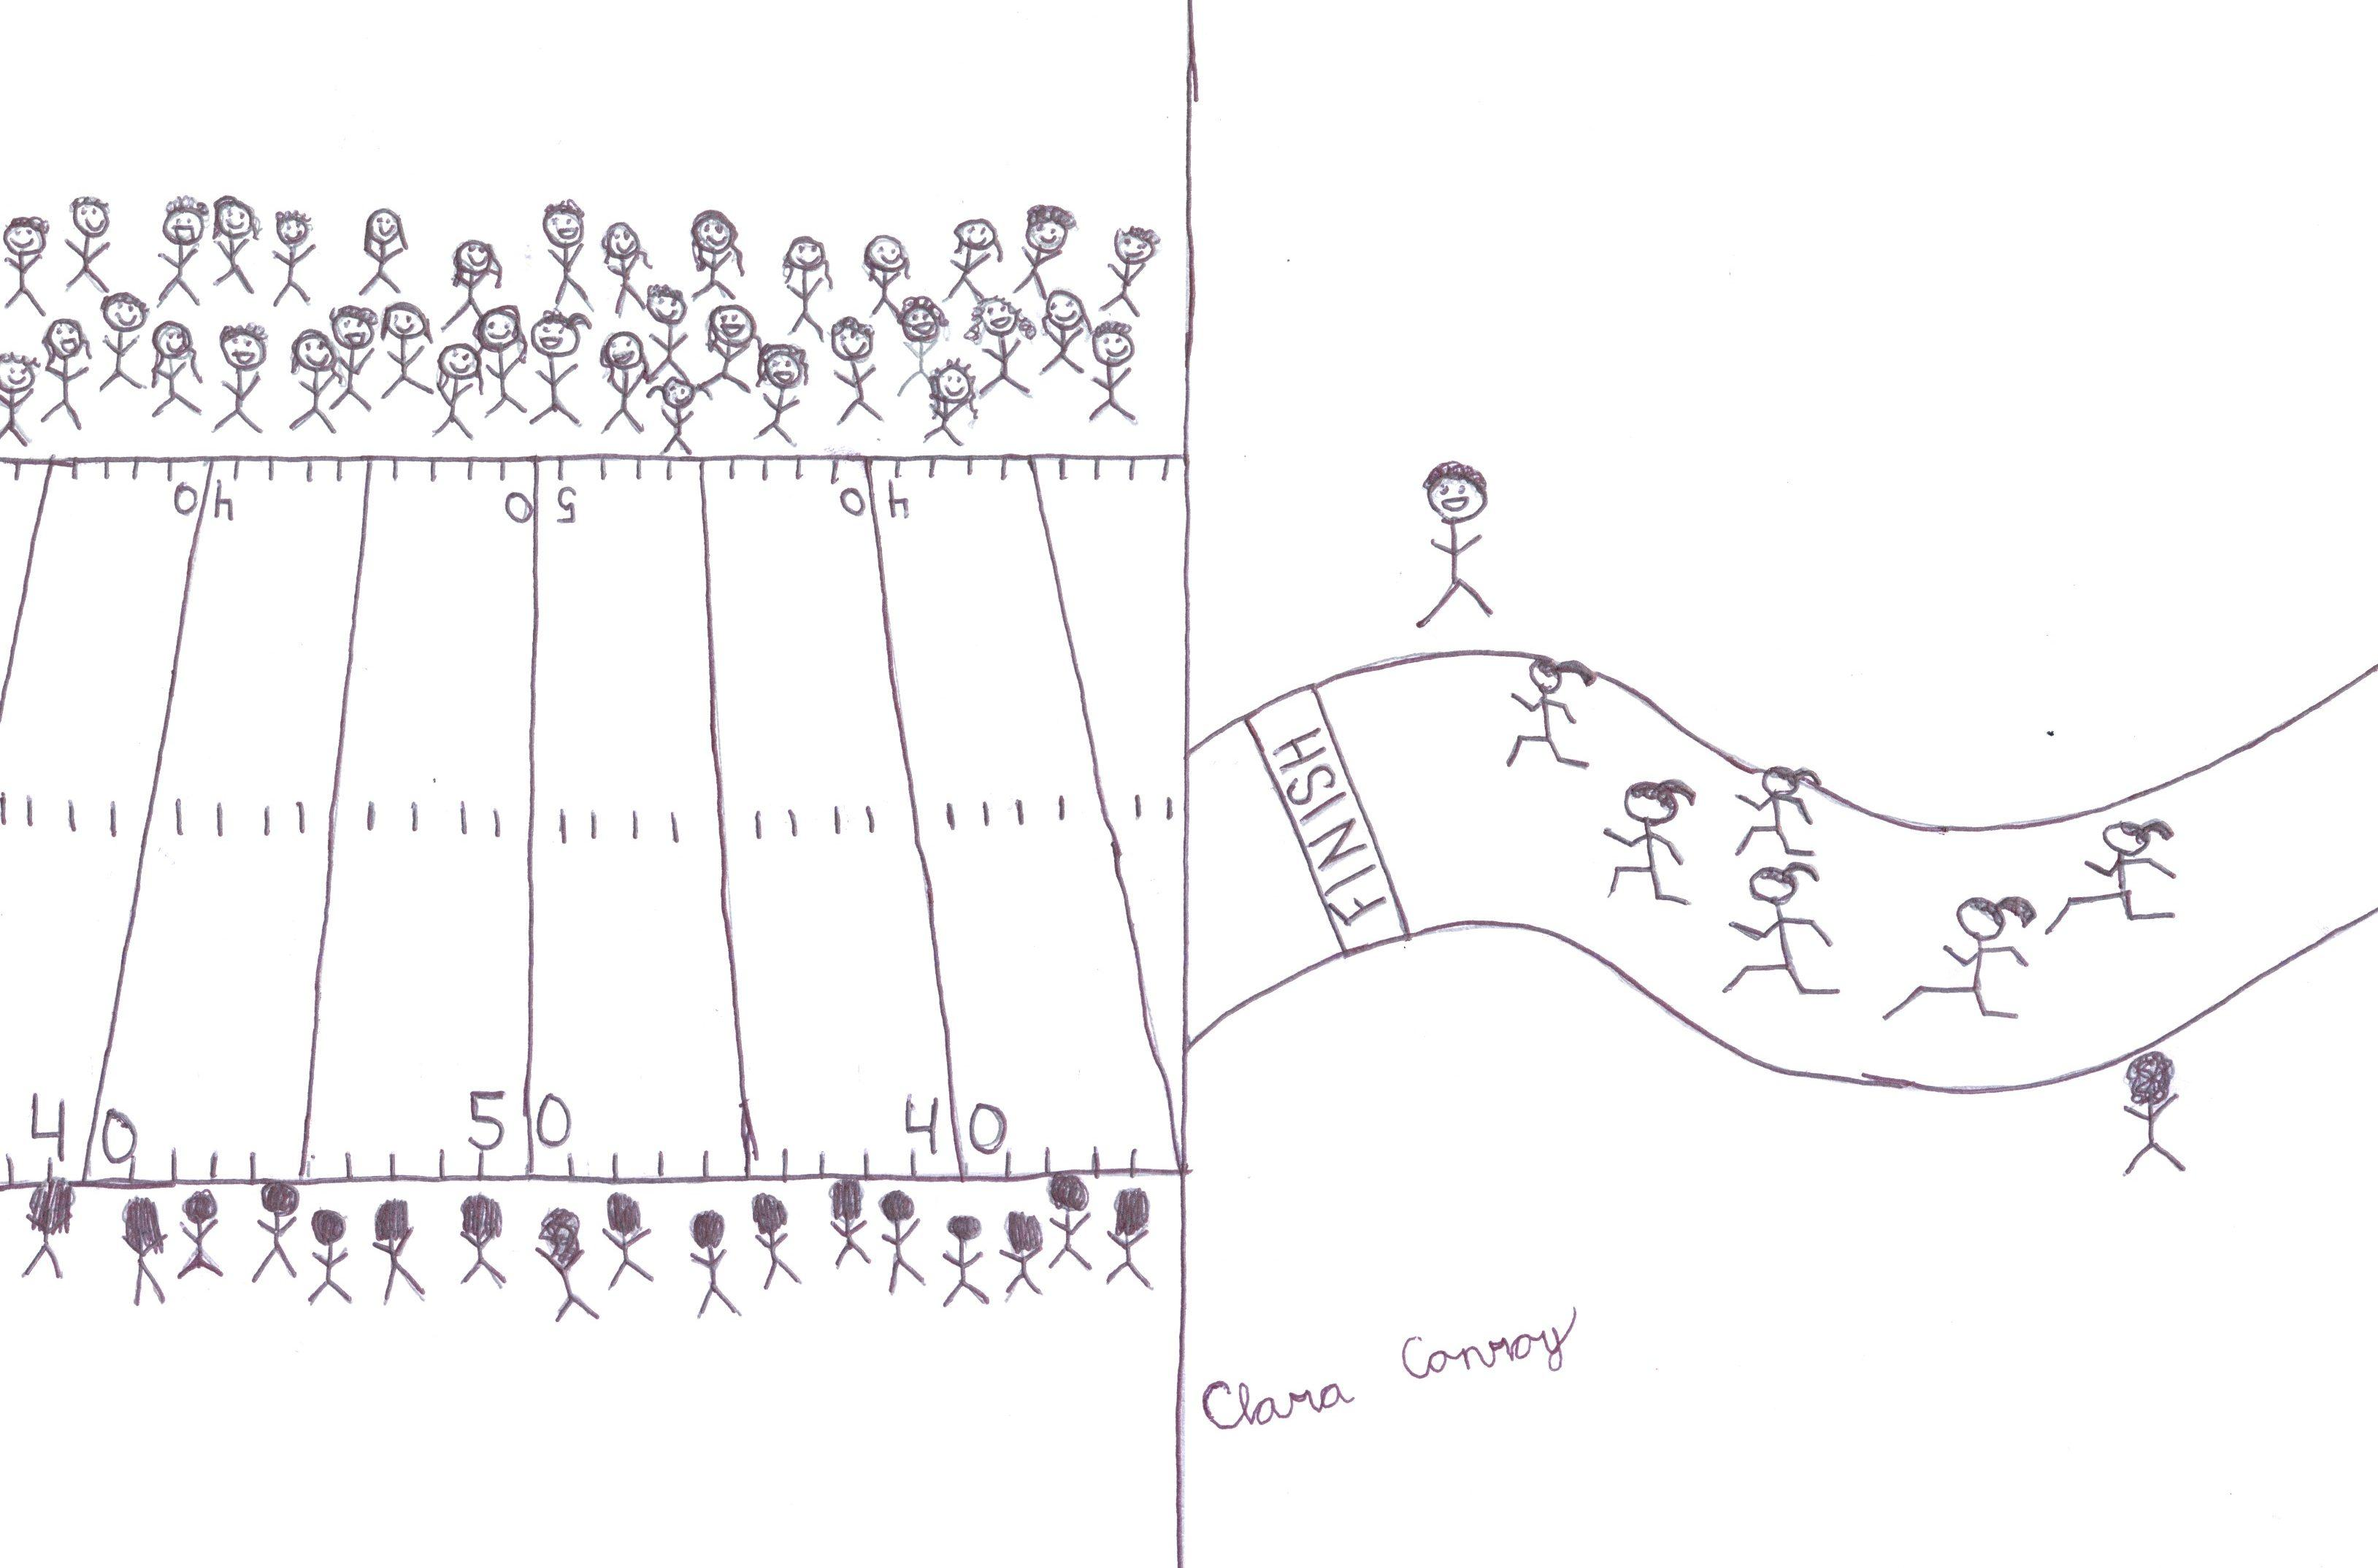 Cheer for Cross Country Cartoon by Clara Conroy